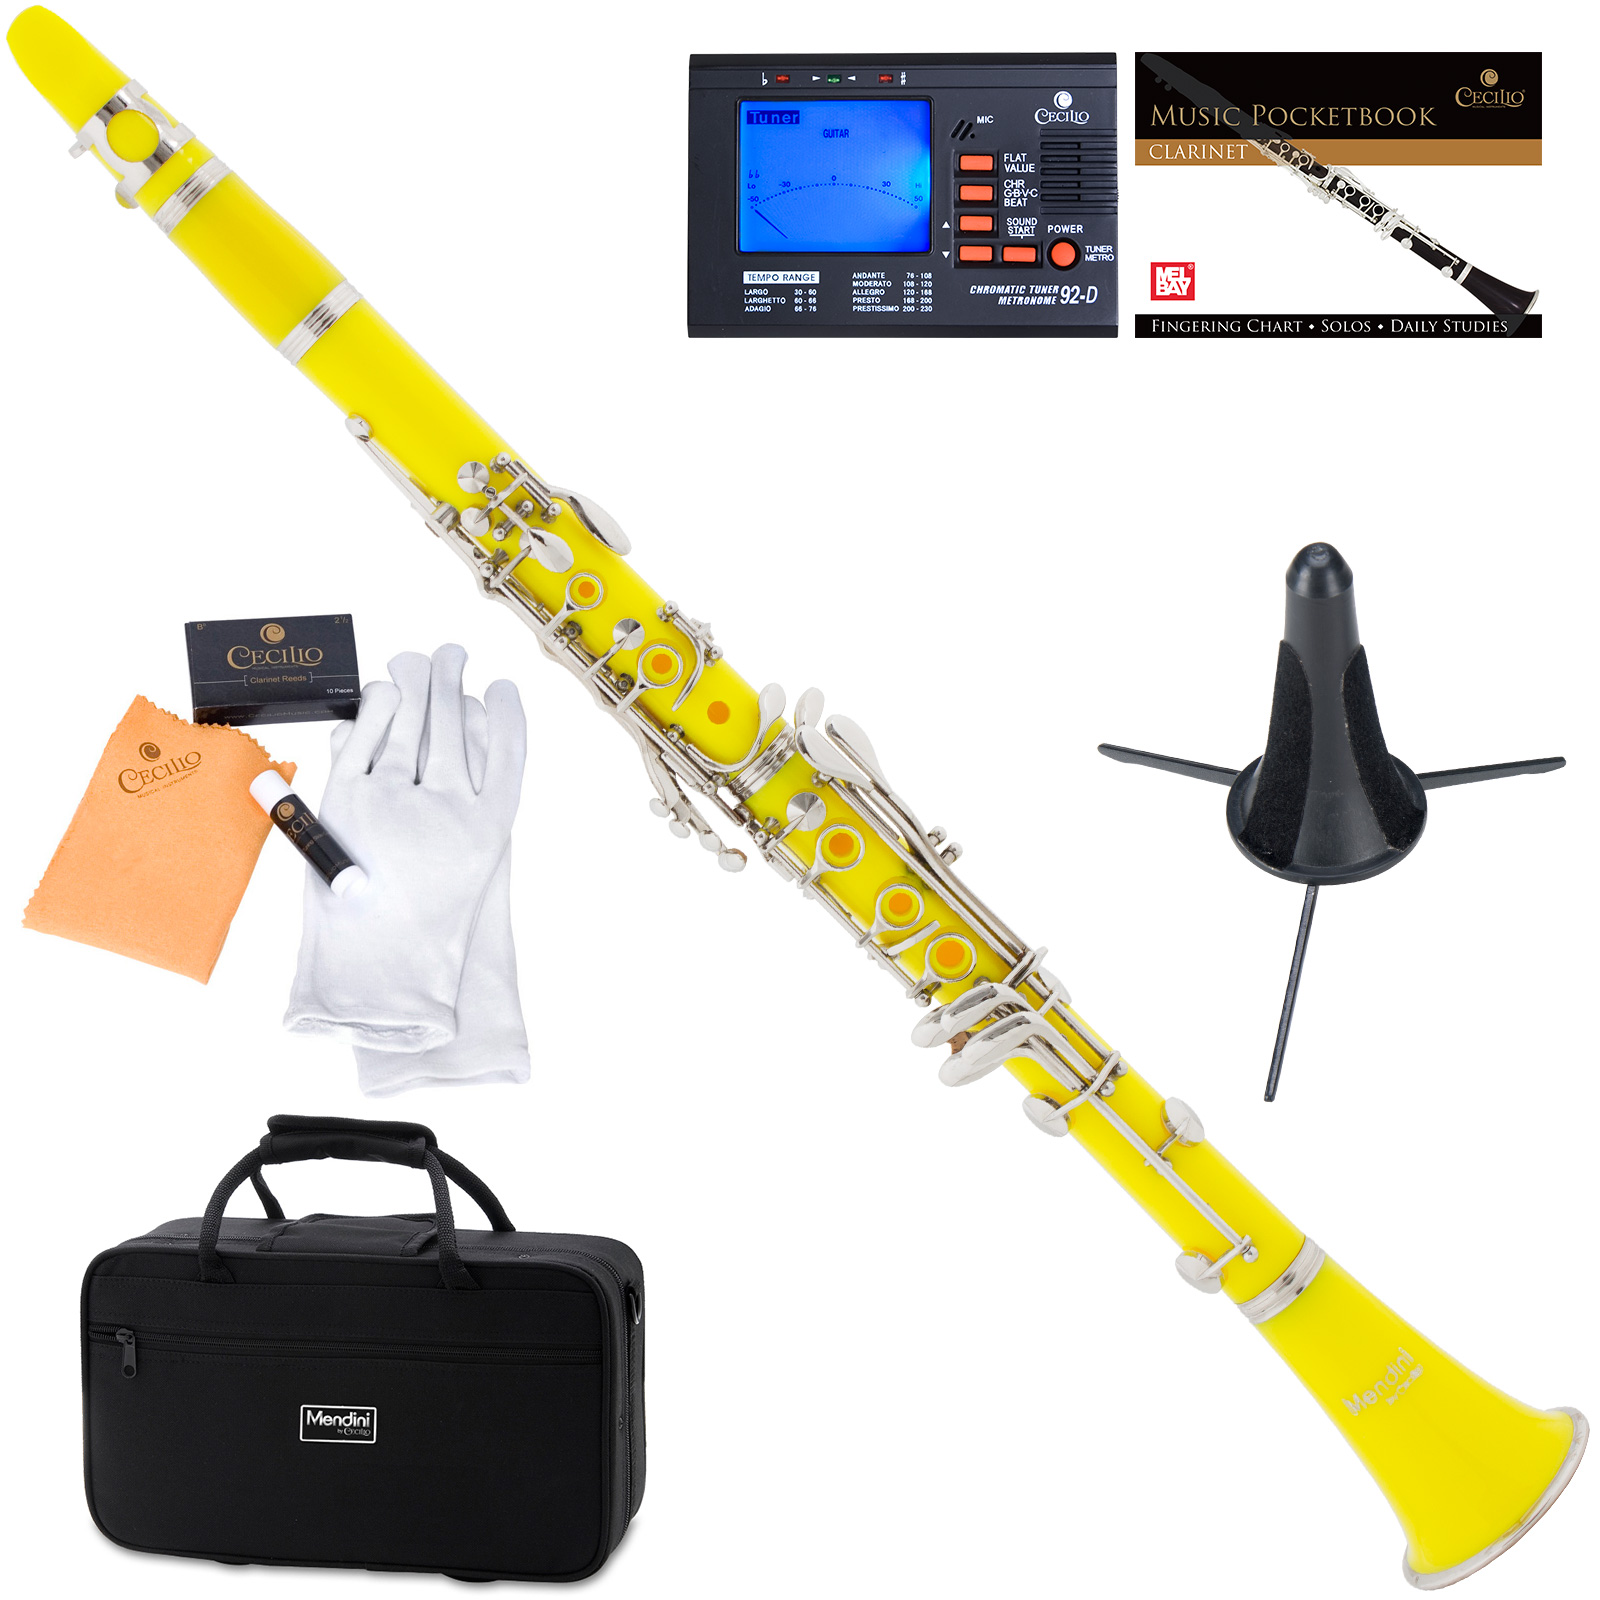 Mendini by Cecilio MCT-YL Yellow ABS Bb Clarinet w/1 Year Warranty, Stand, Tuner, 10 Reeds, Pocketbook, Mouthpiece, Case, B Flat